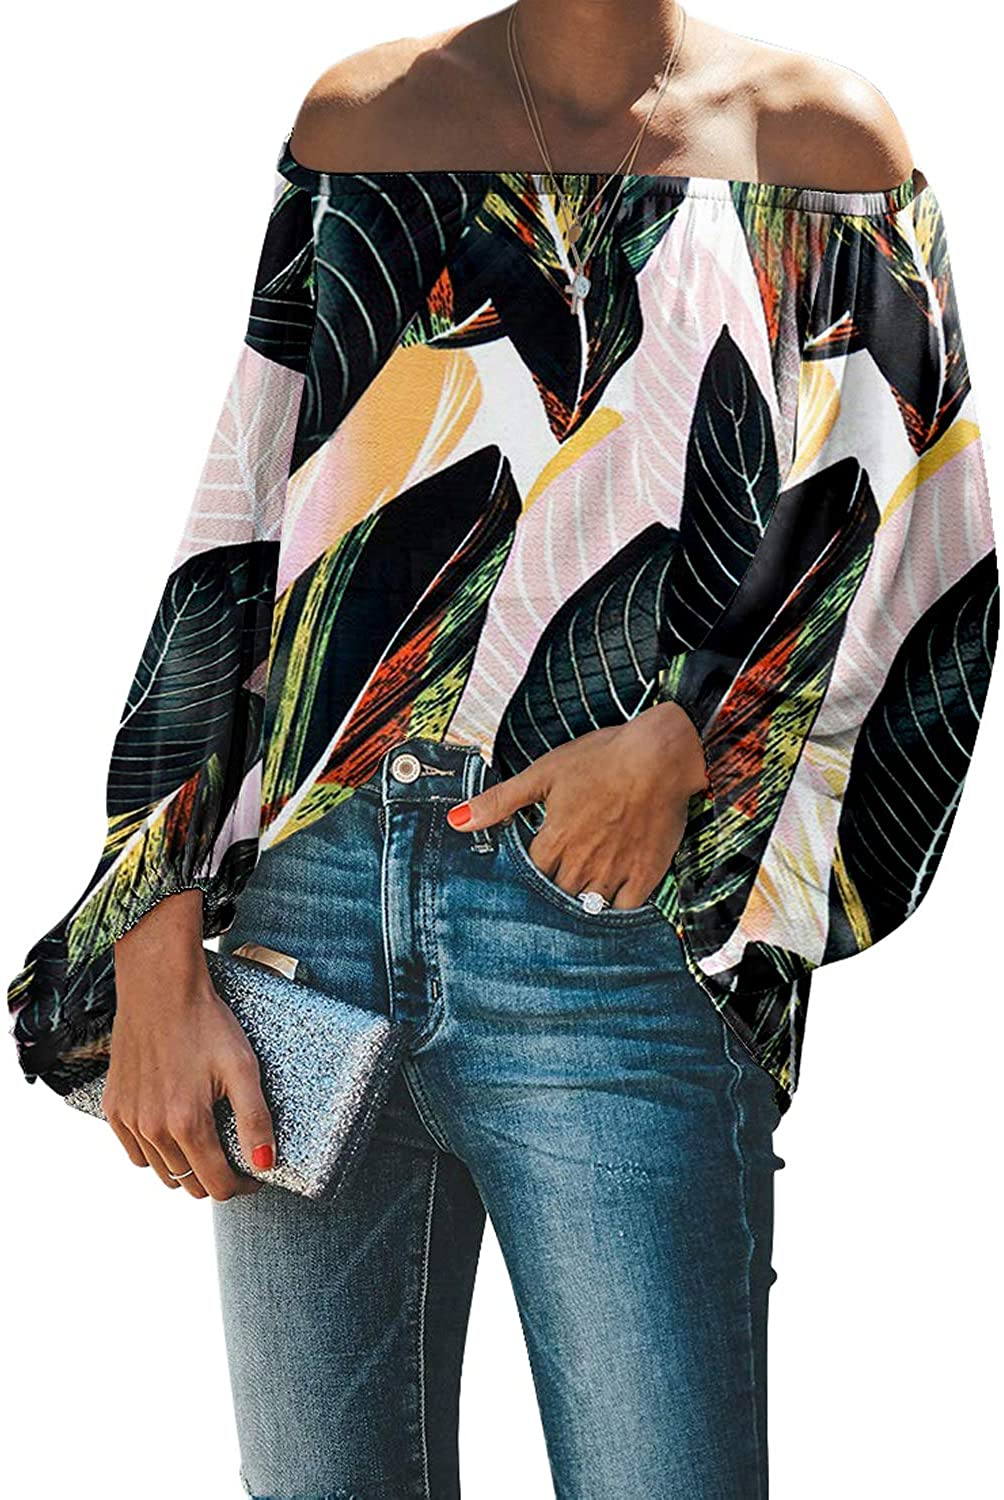 Paitluc Blouses for Women Lantern Sleeve Summer Fashion Off Shoulder Top Size S-2XL